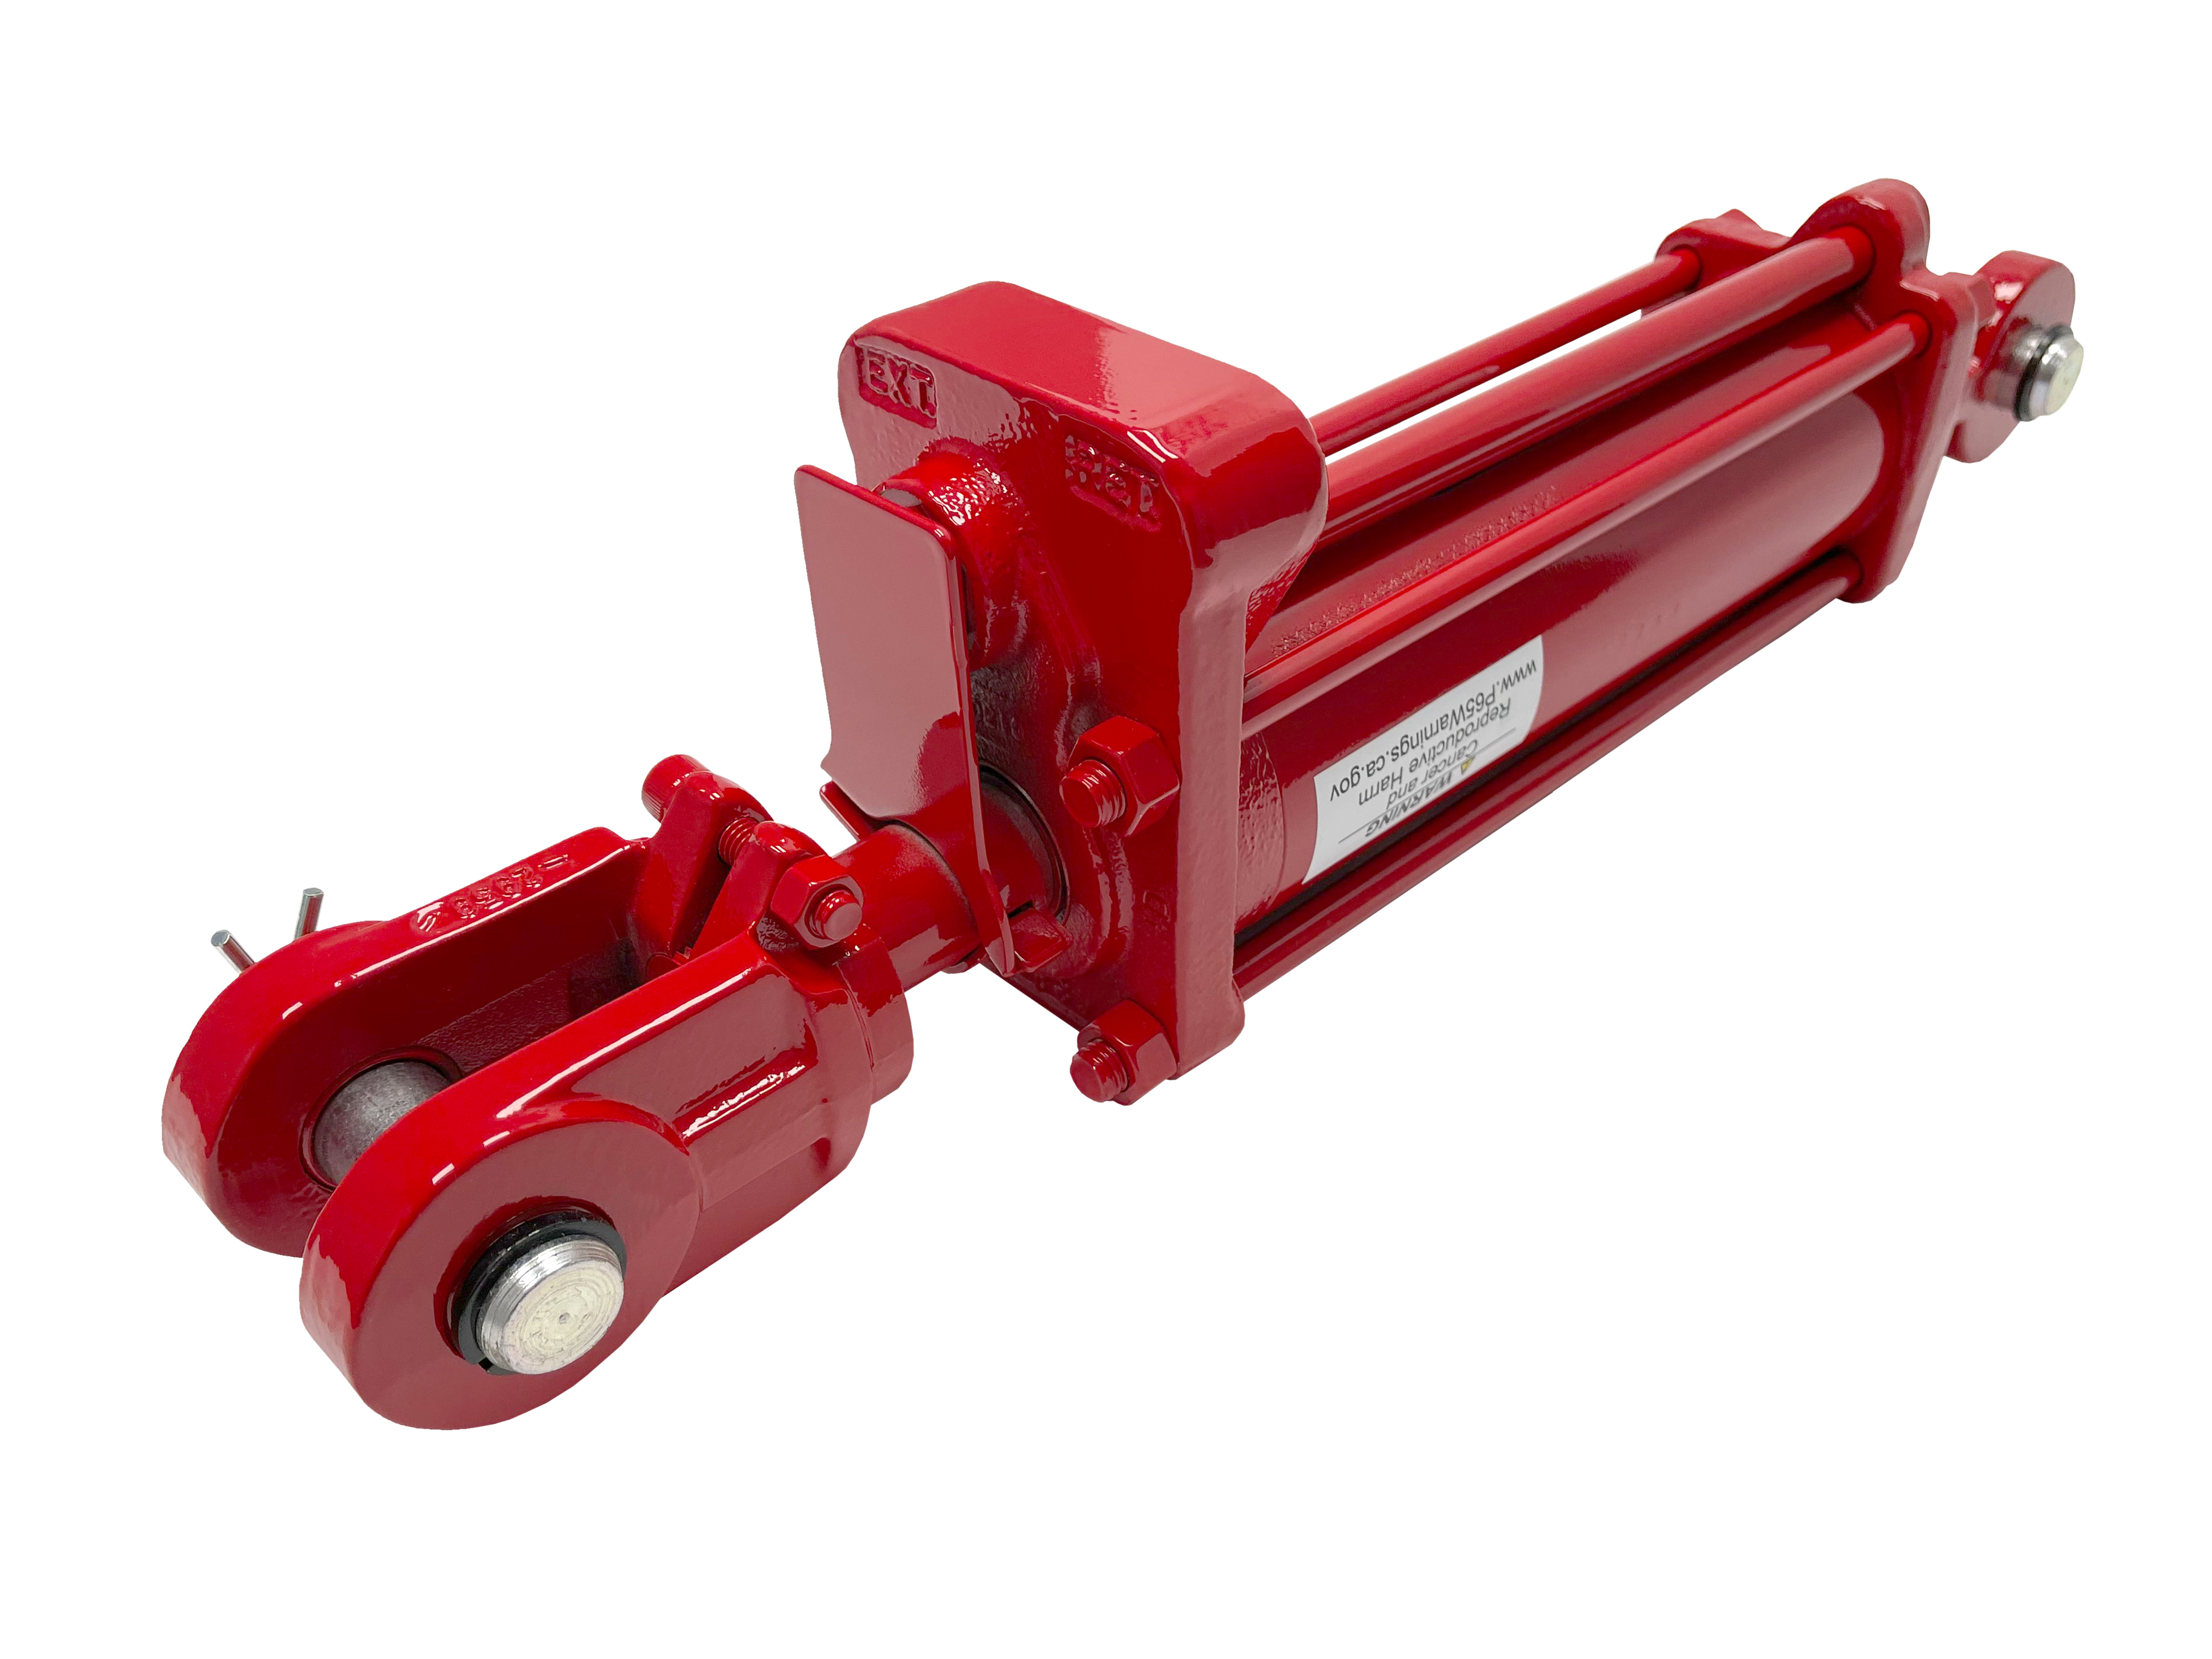 3 bore x 8 stroke CROSS hydraulic cylinder with depth control, tie rod double acting cylinder DC series   CROSS MANUFACTURING